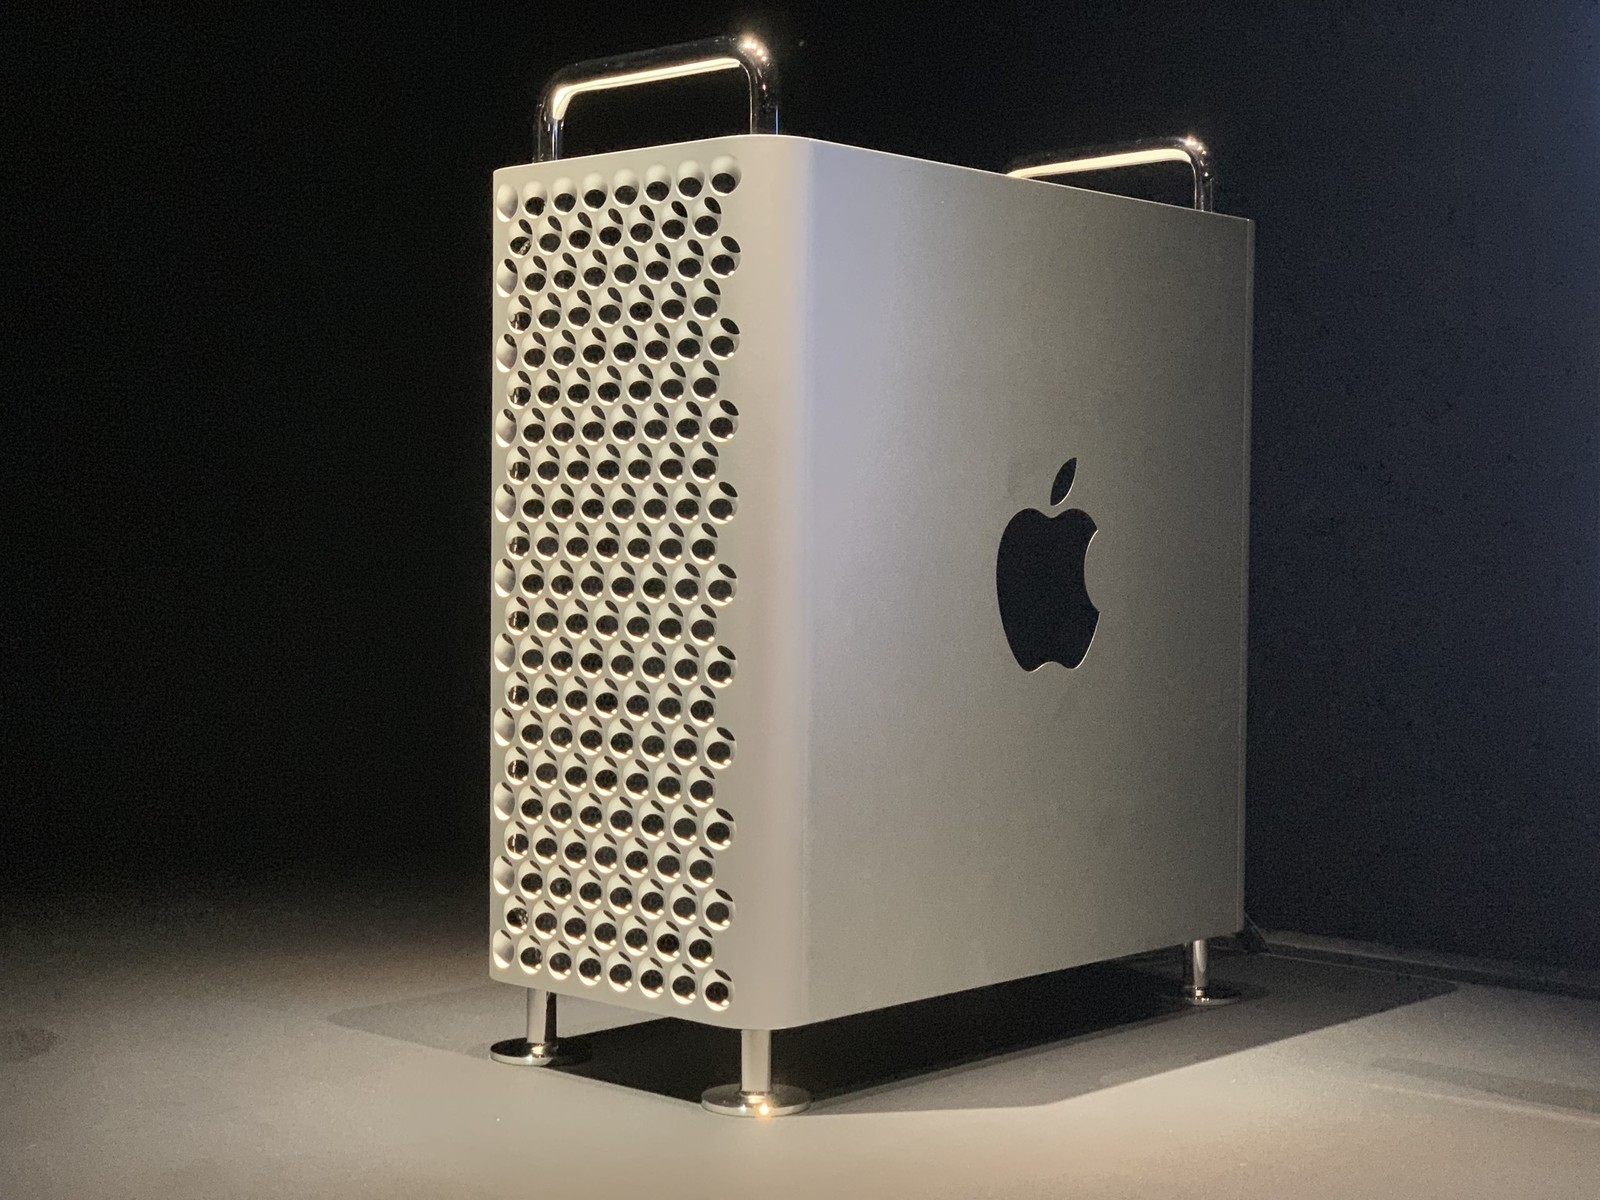 Mac Pro Expansion Slot Utility